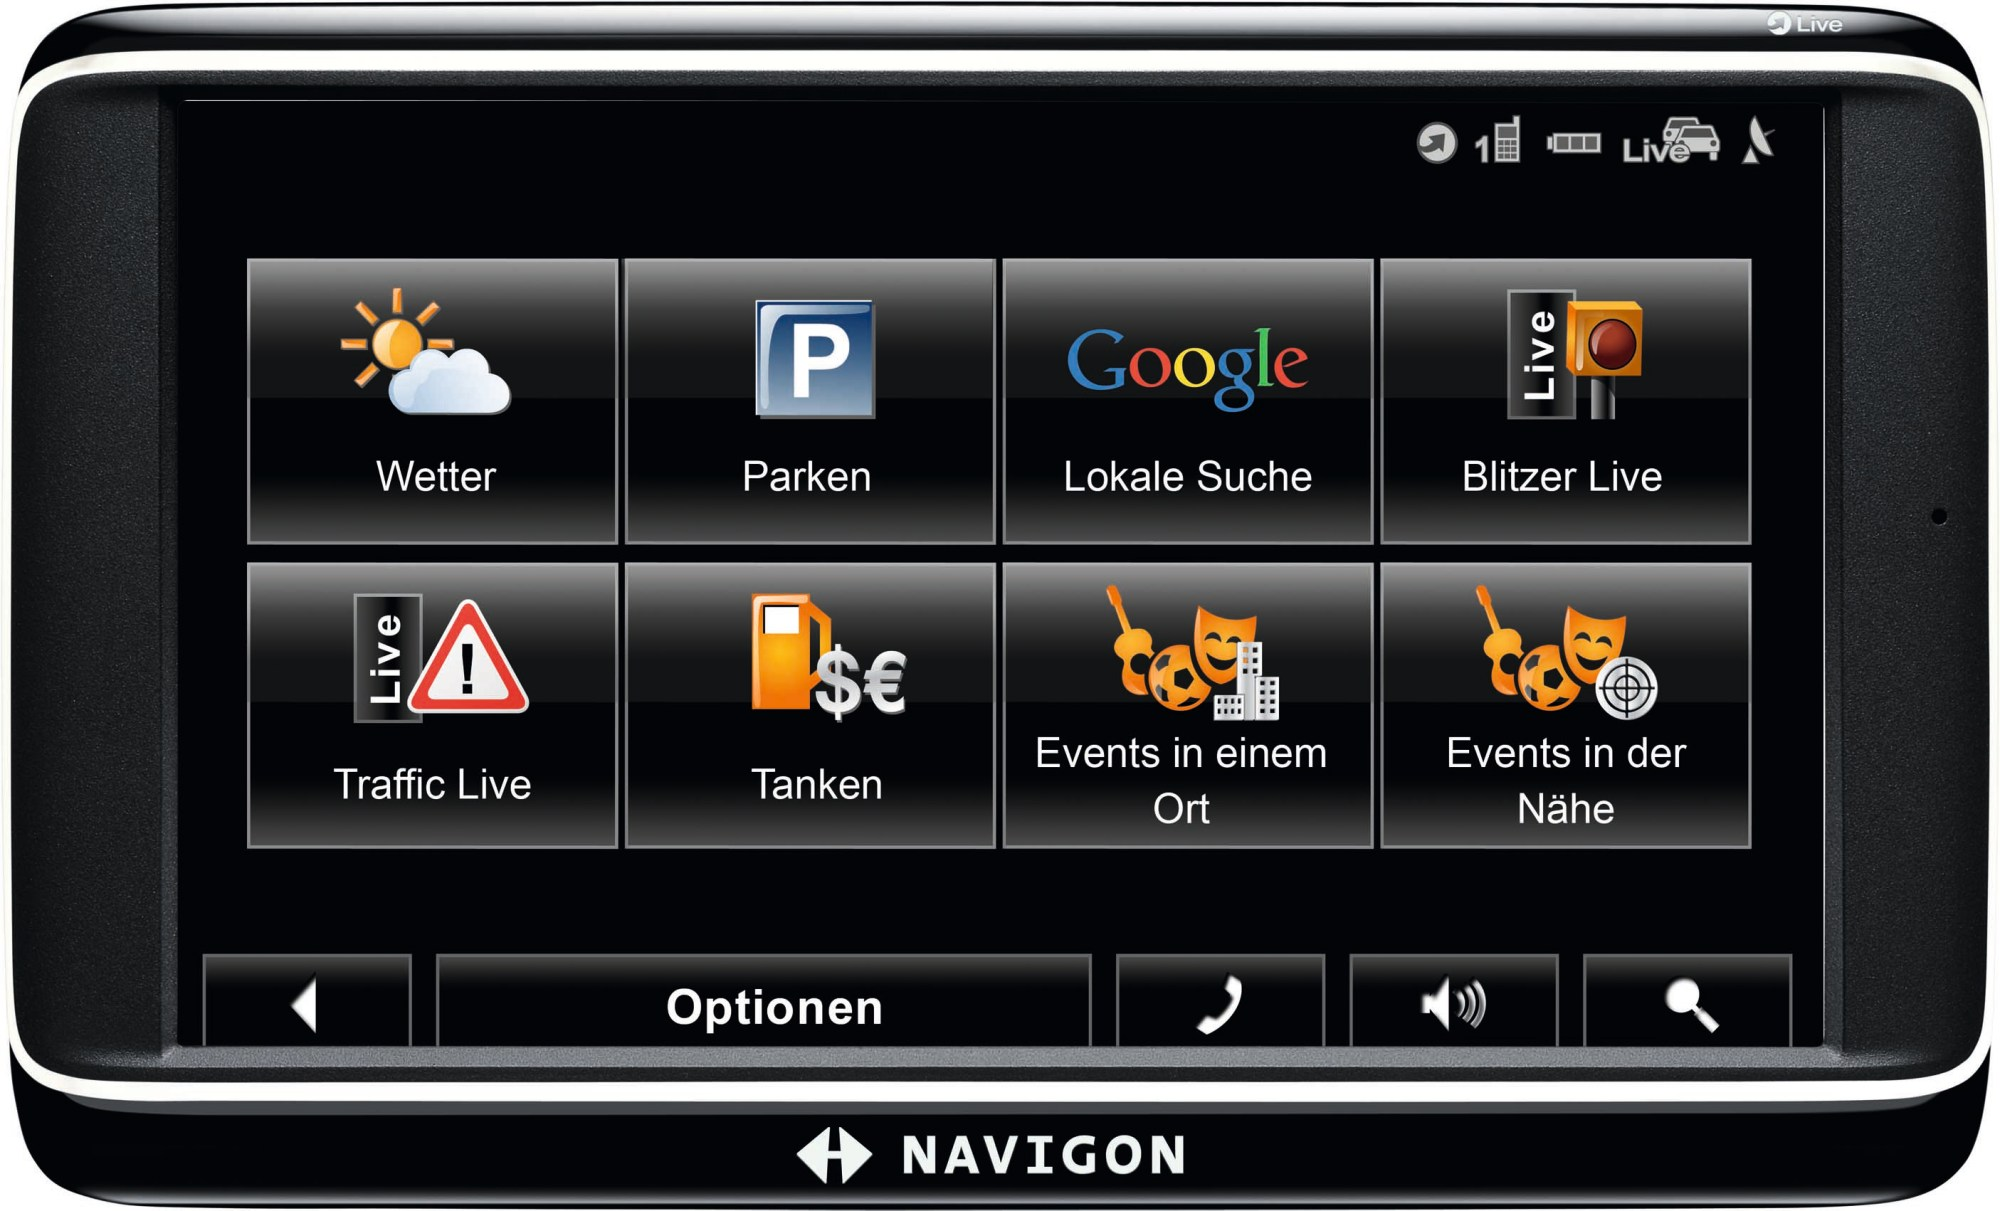 Navigon mobile navigator v 6 eastern europe map 2017 ...